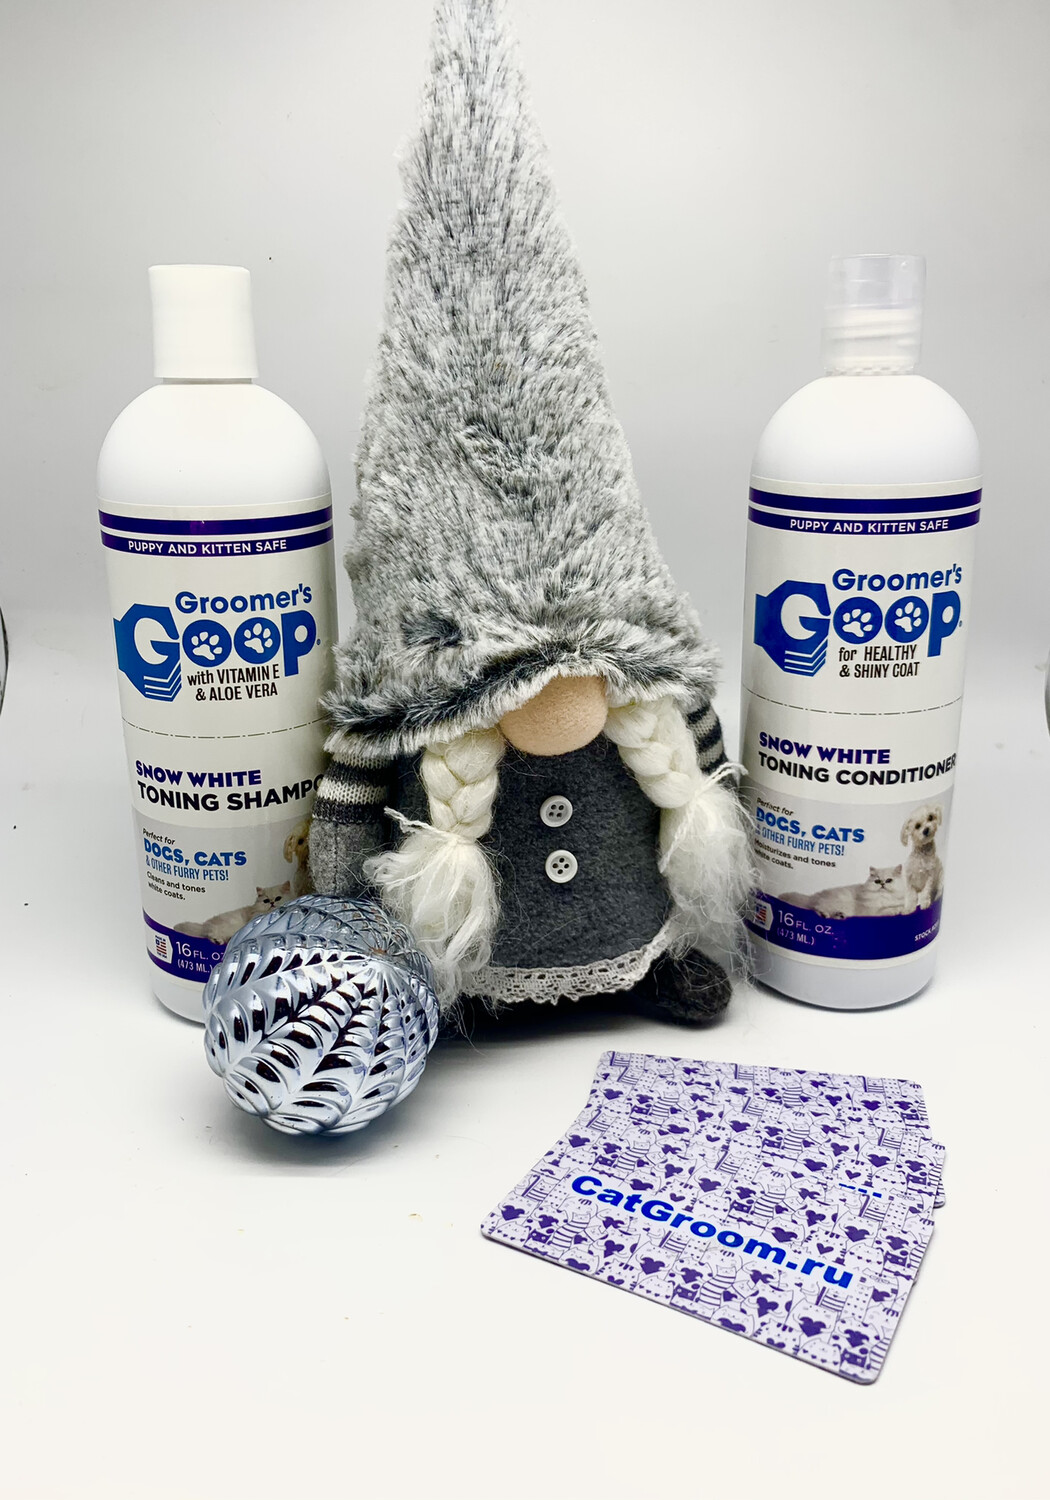 Groomer's Goop набор - Kit Snow White